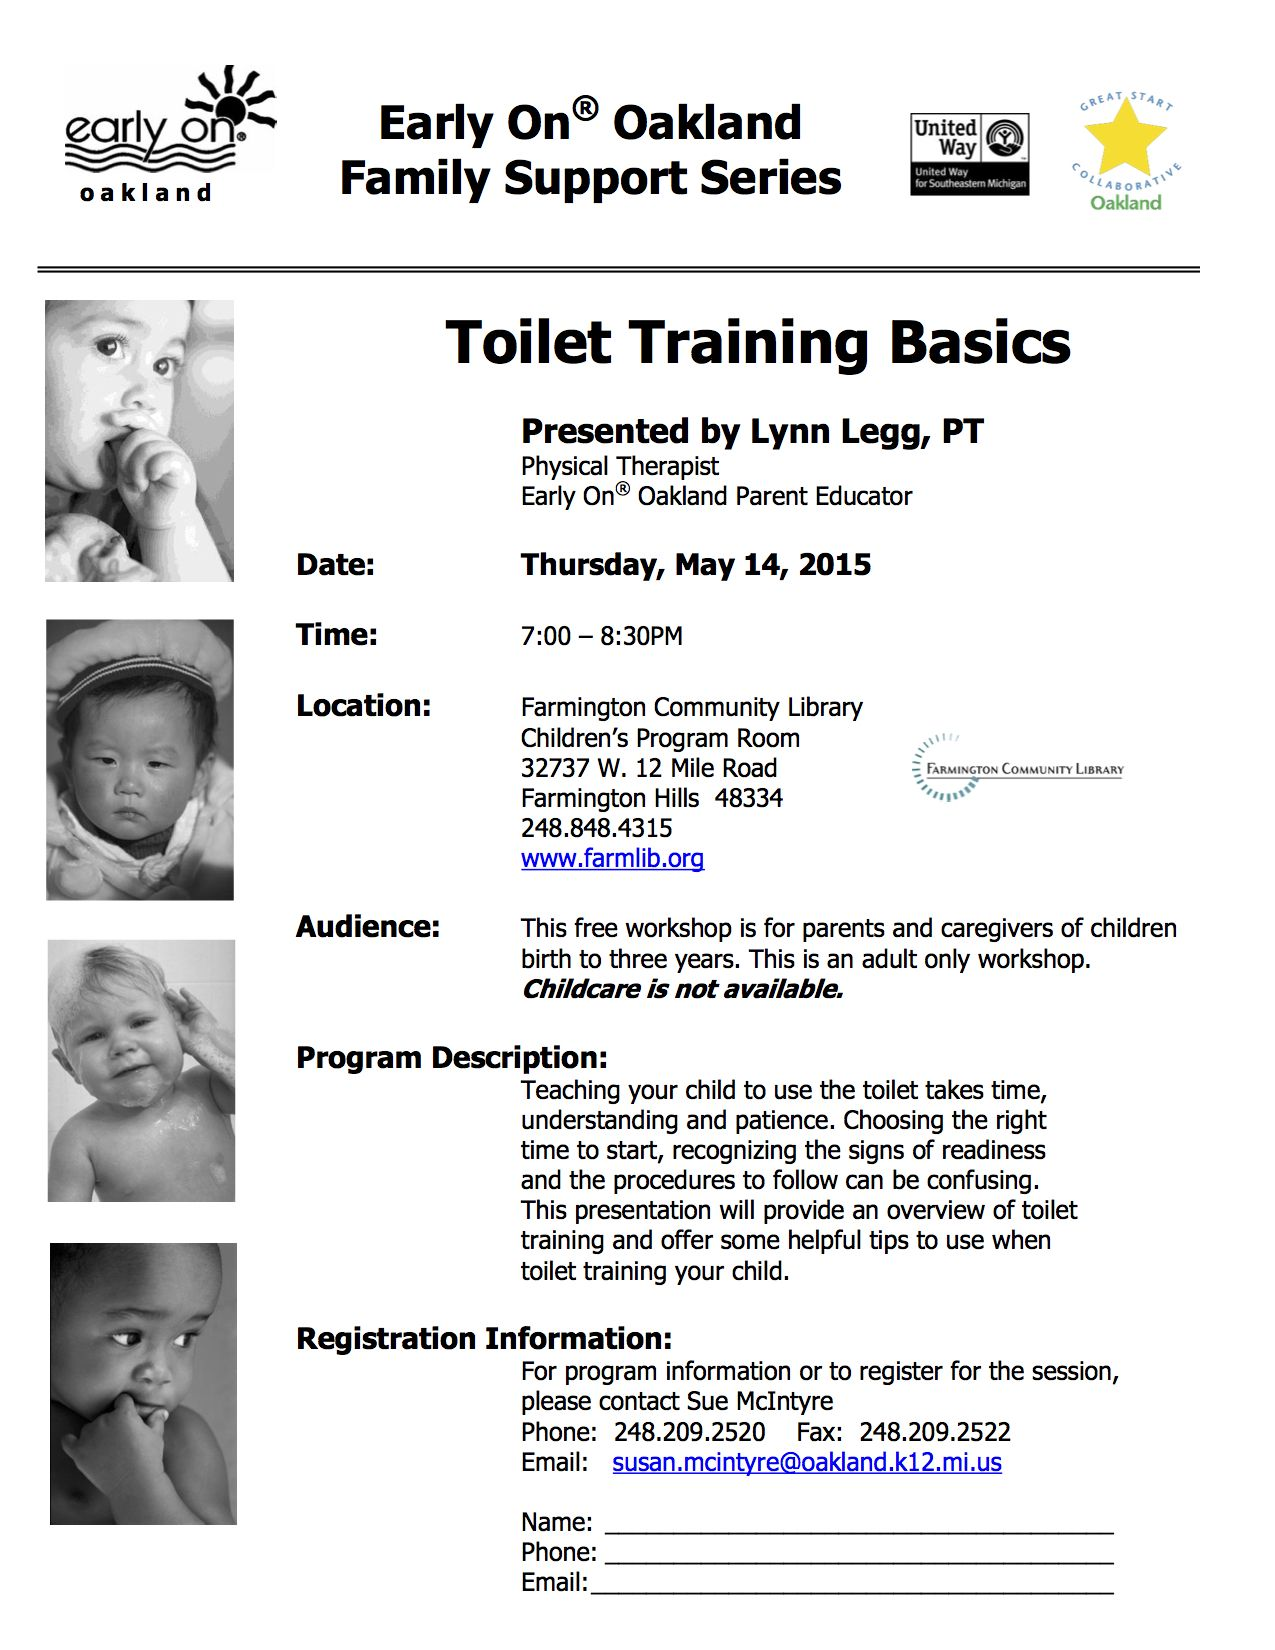 Teaching your child to use the toilet takes time, understanding and patience. Choosing the right time to start, recognizing the signs of readiness and the procedures to follow can be confusing. Need help, join us!